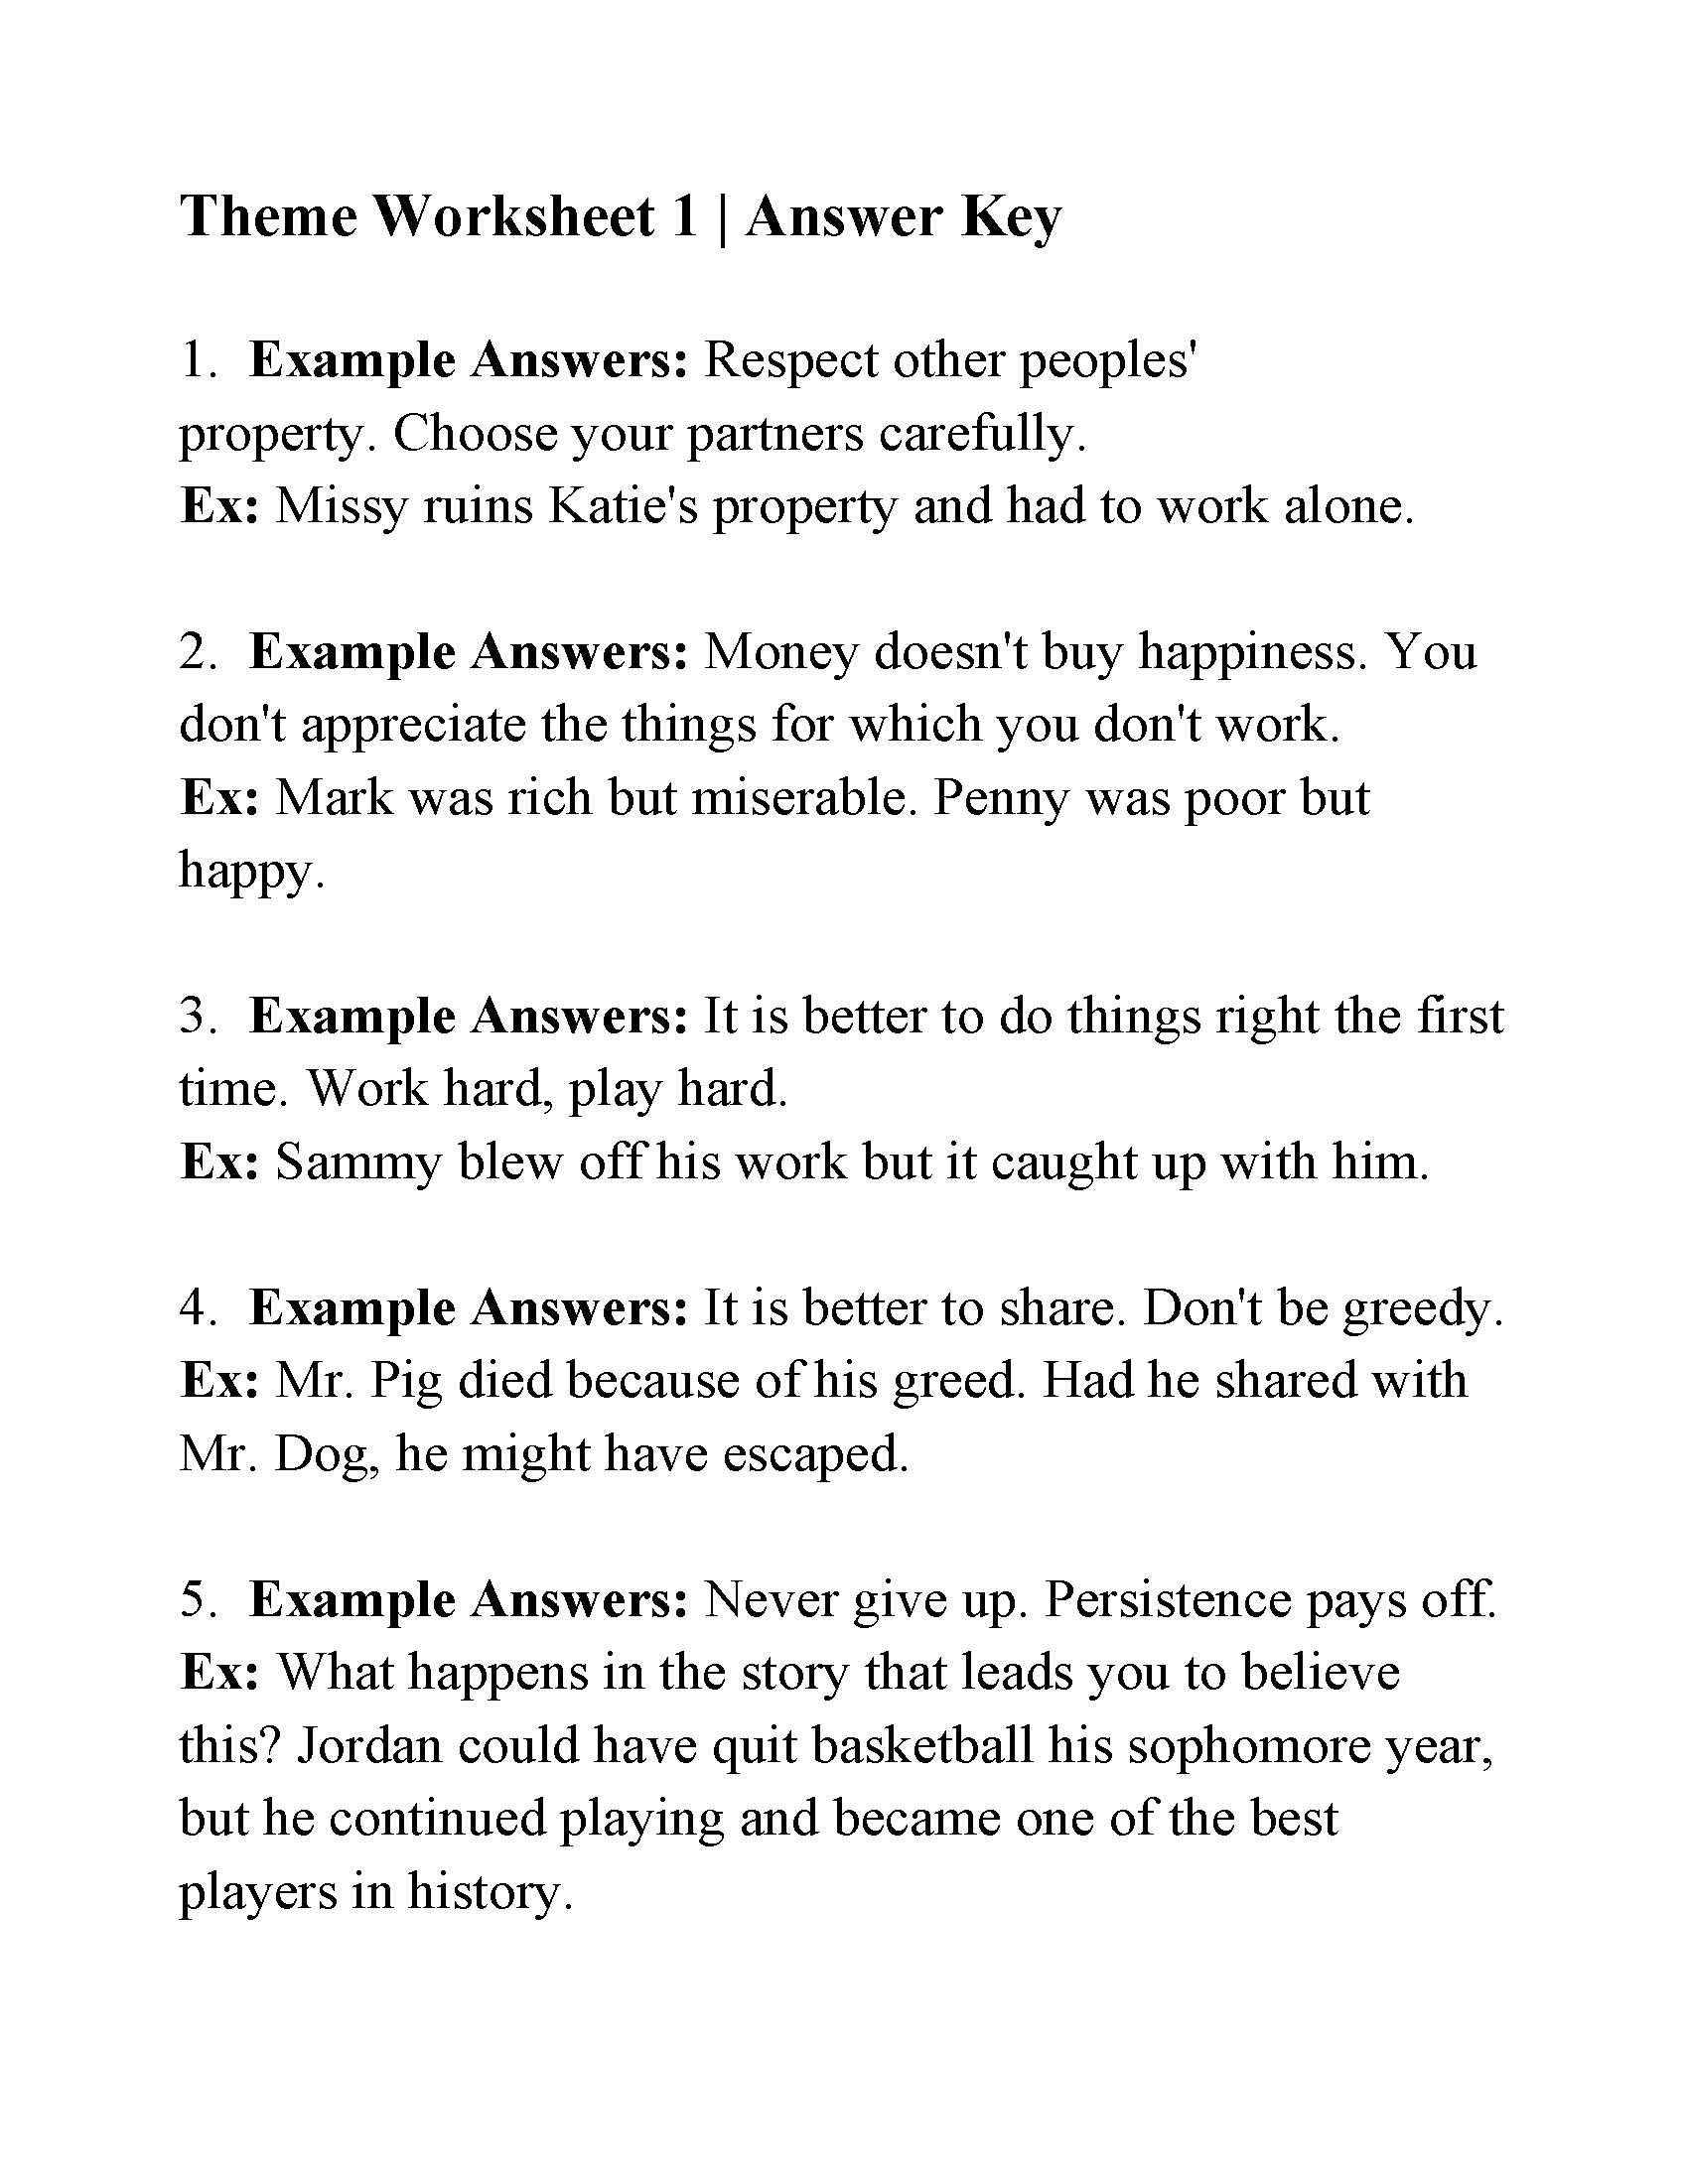 Theme Worksheet 1